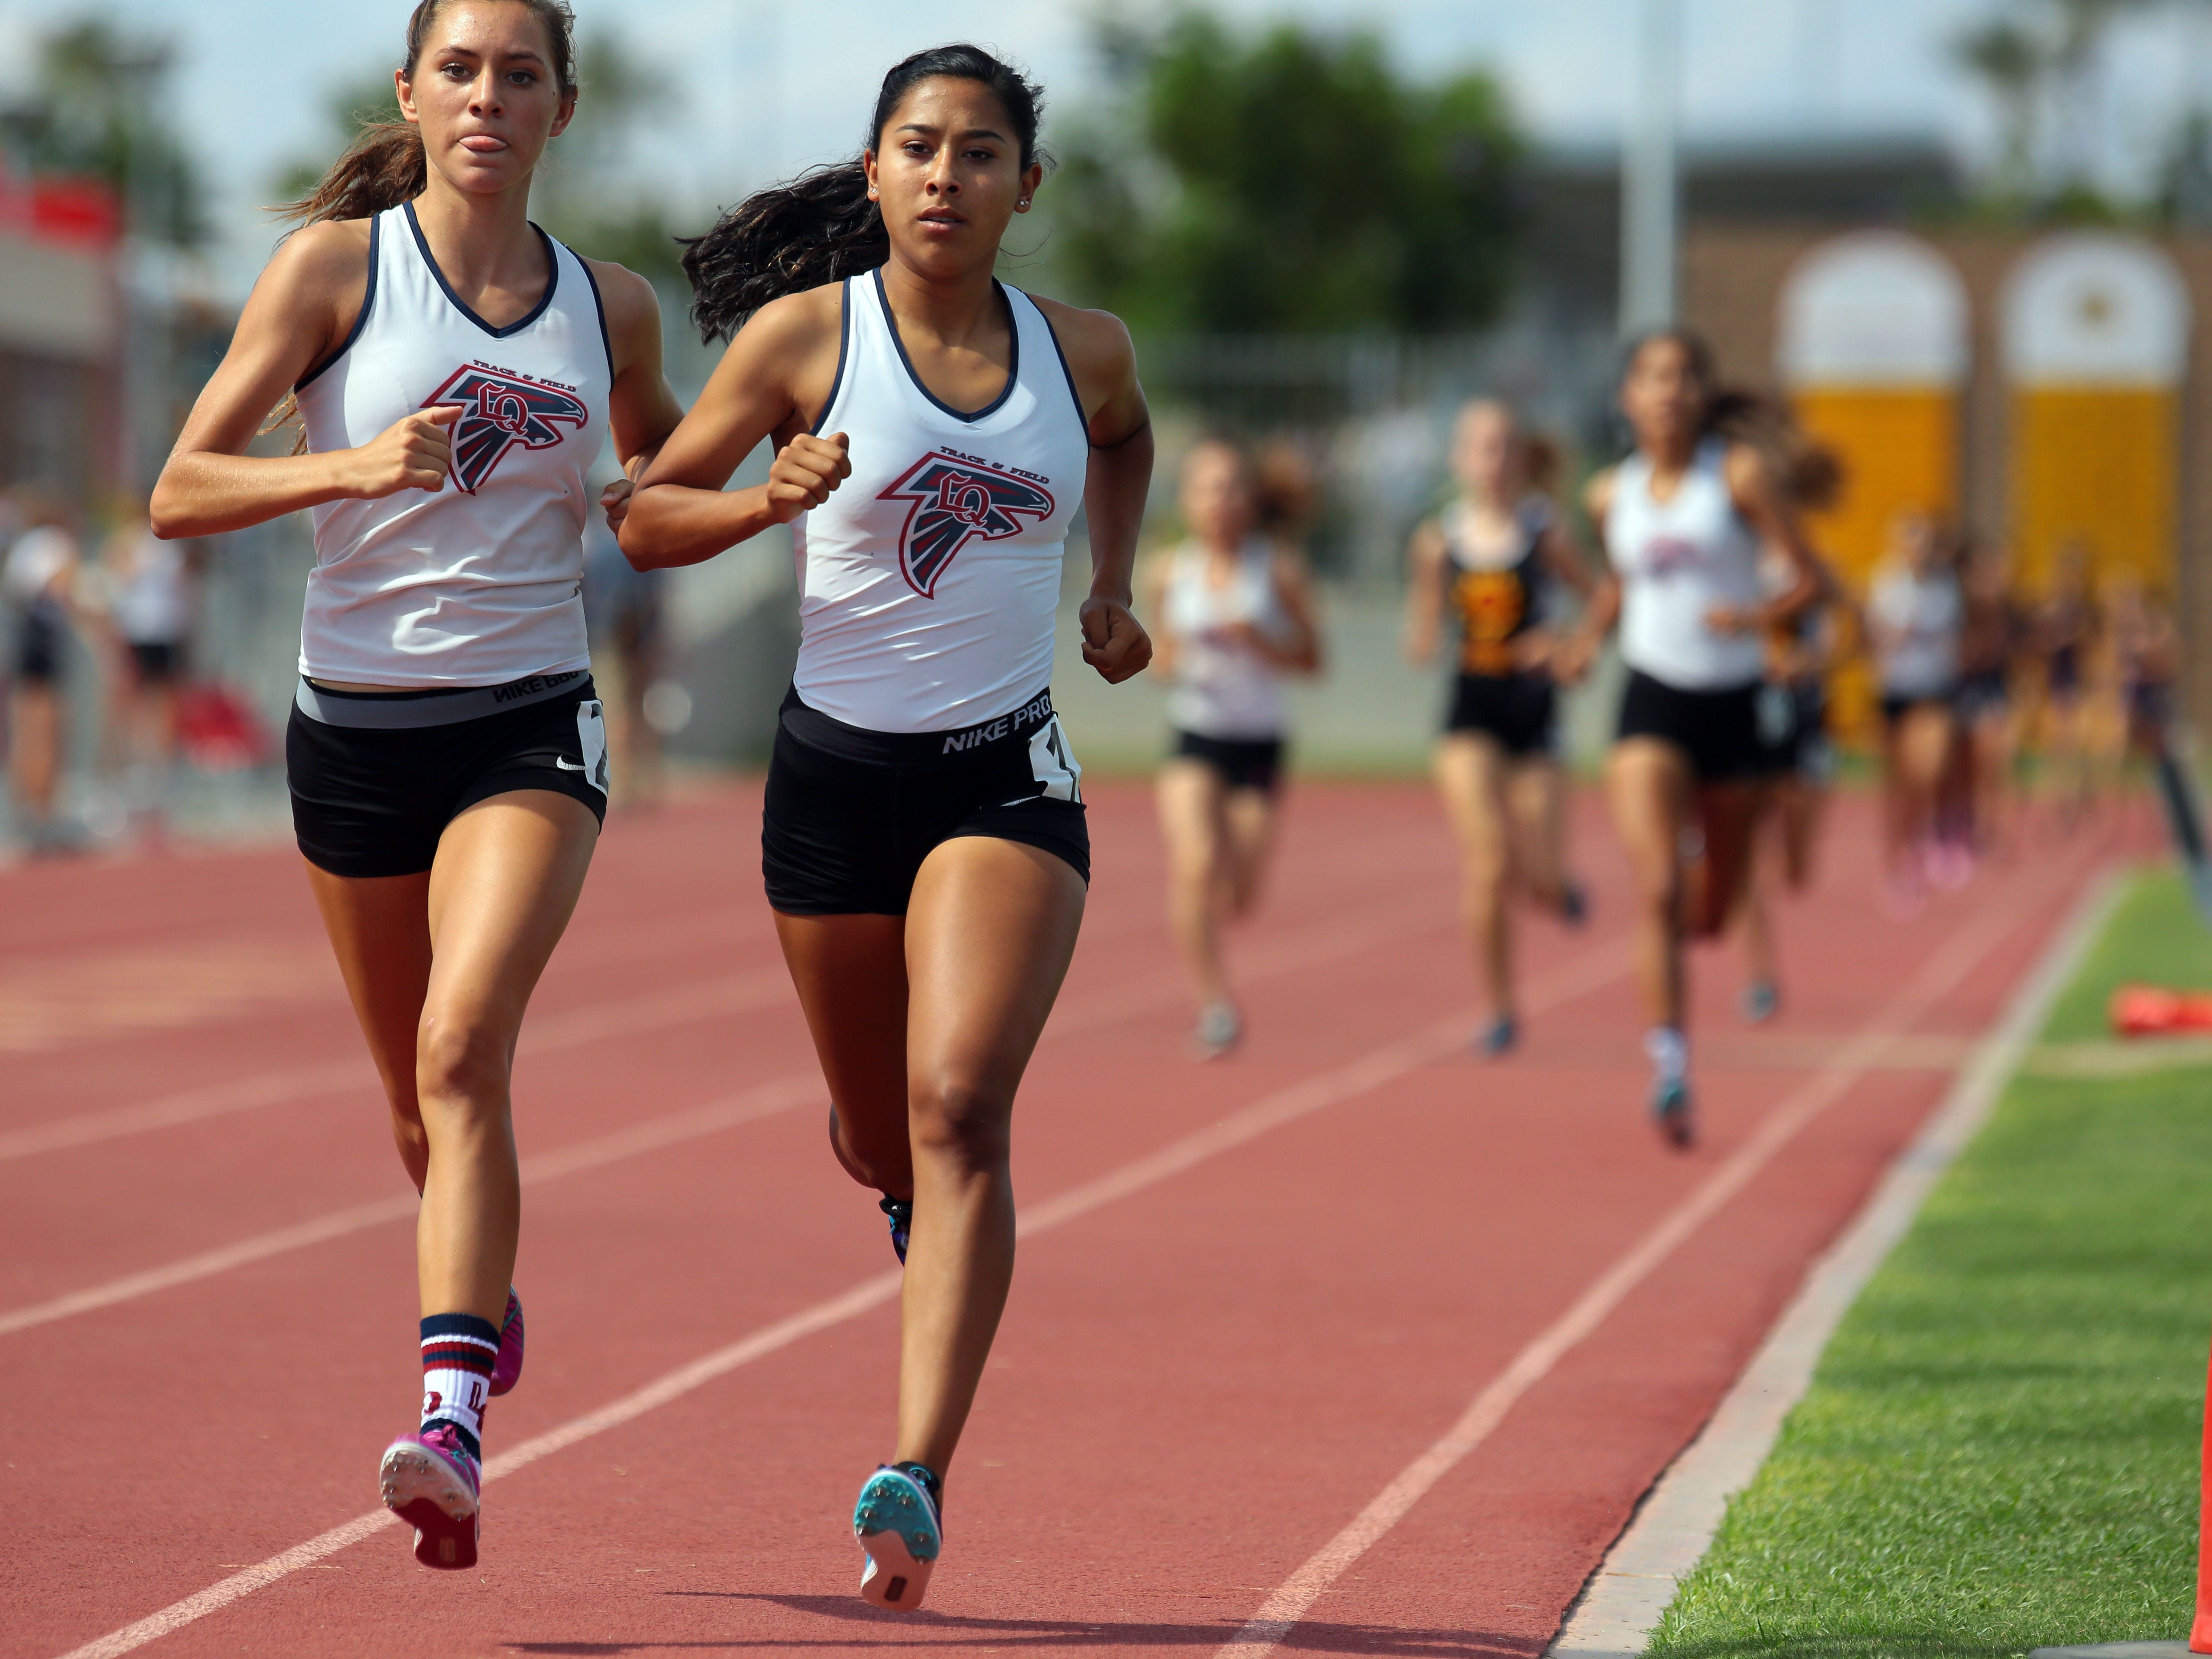 La Quinta's Marisa Rodriguez, right, and Sandra Flores compete in the 1600 on Thursday in Palm Desert. Rodriguez won the race with Flores in 2nd place.